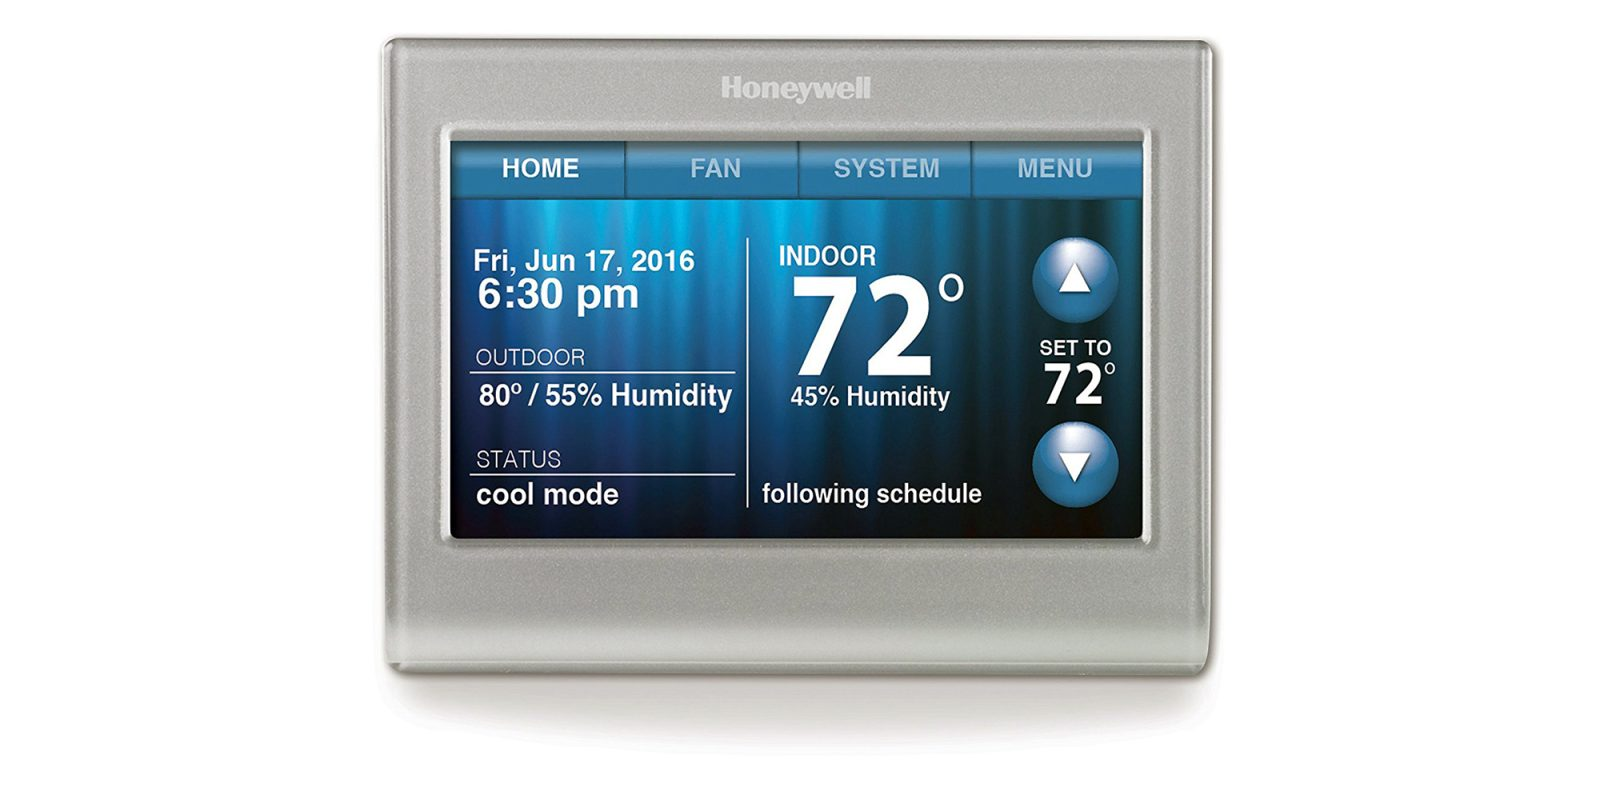 Honewell's color smart thermostat hits one of its best prices at $119, more